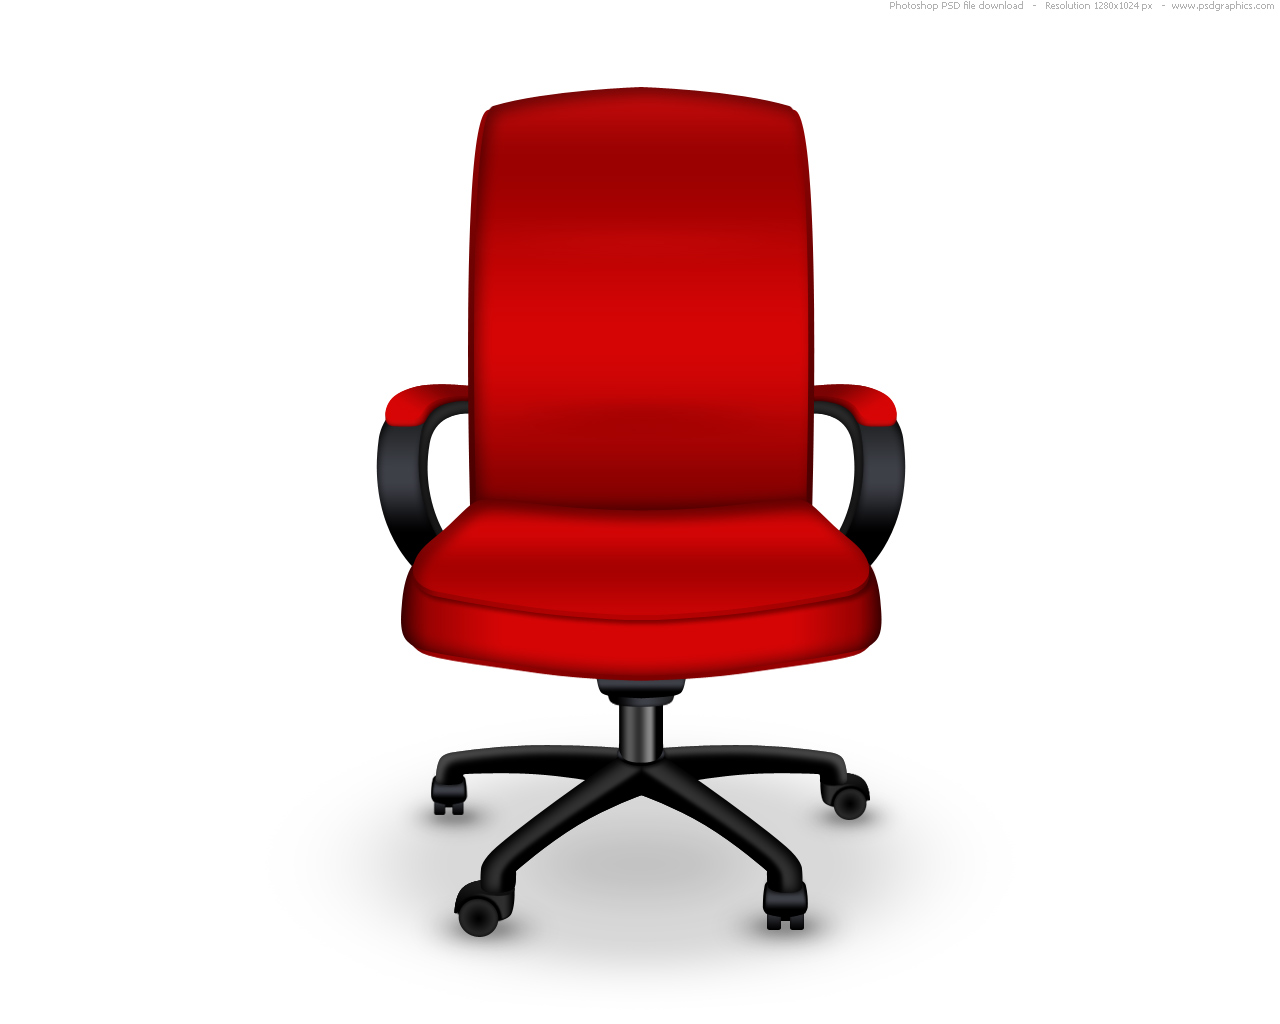 Red Leather Office Chair Red Office Chair Psd Icon Psdgraphics